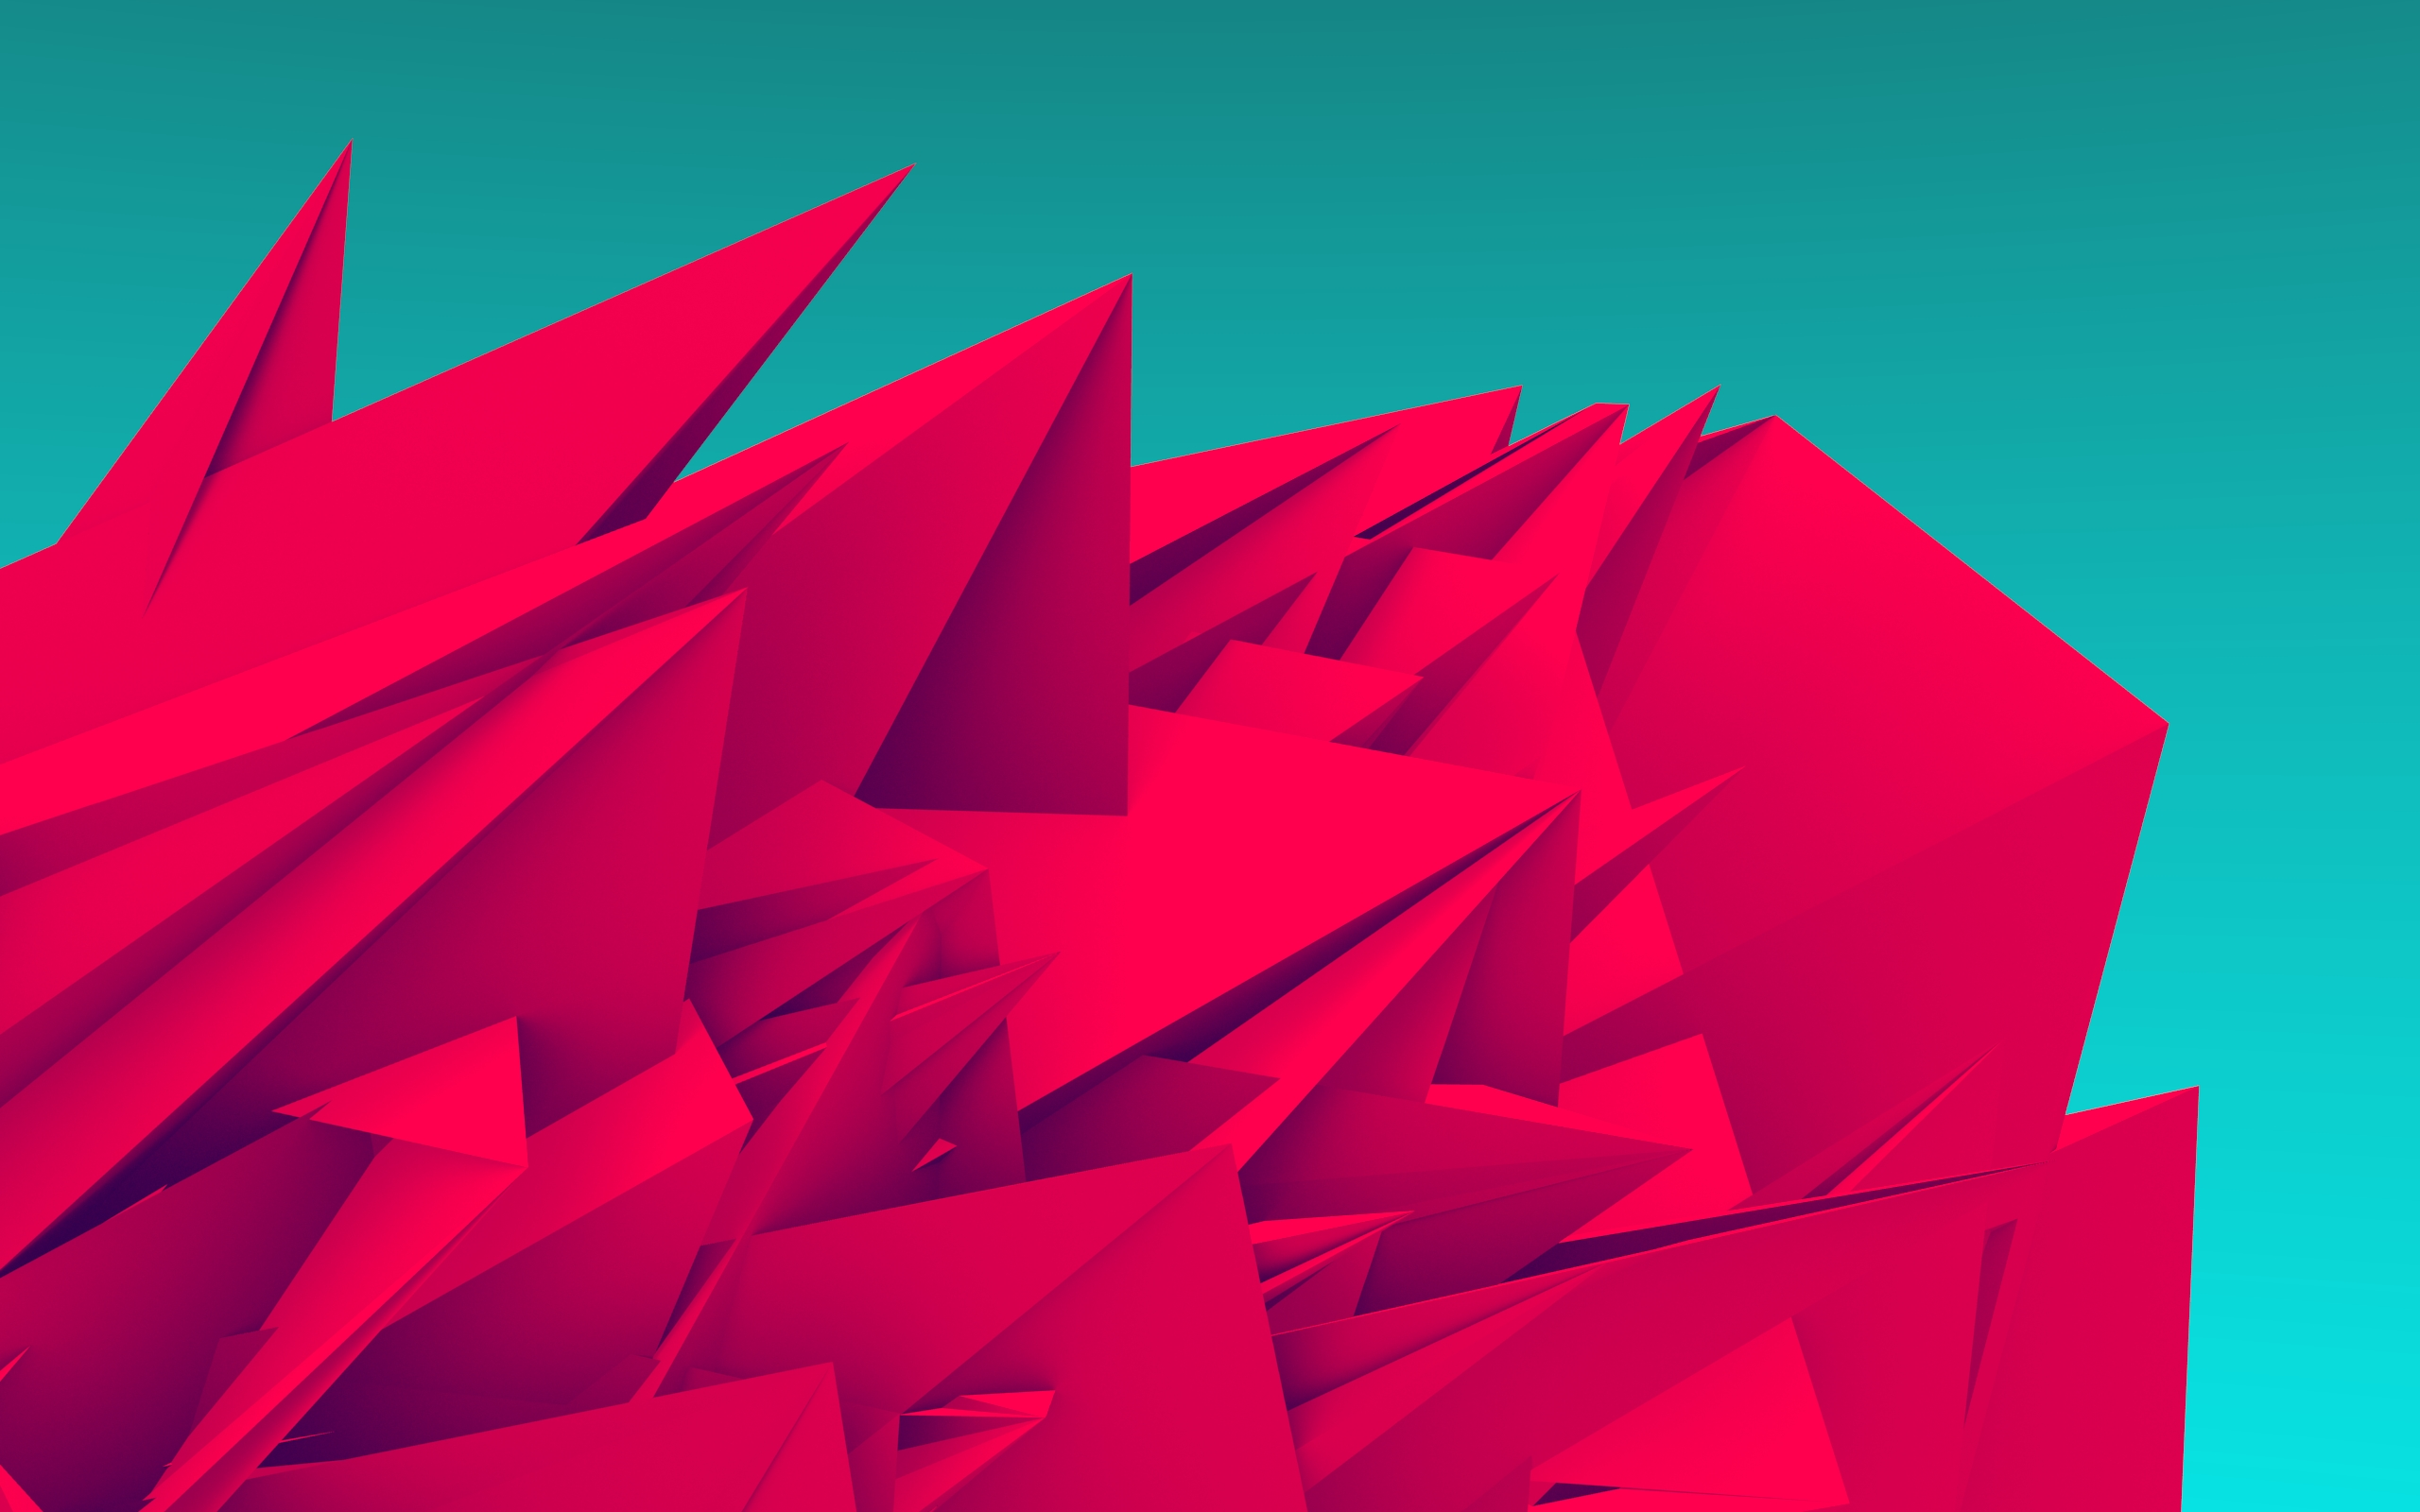 Android Wallpaper Low Poly Art 2560x1600